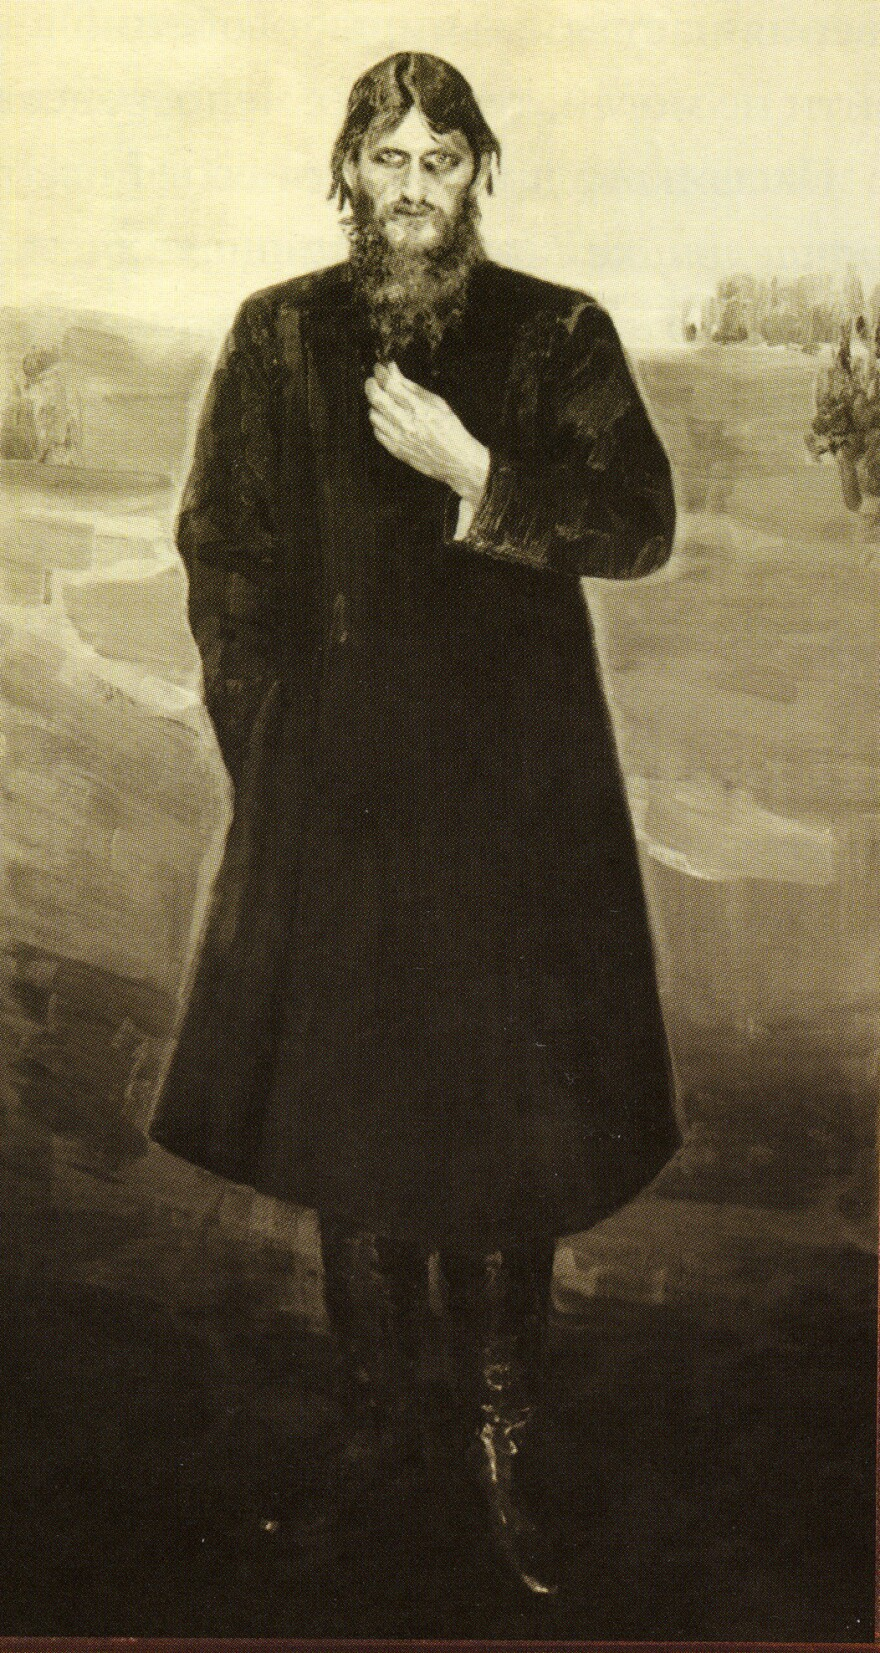 This portrait of Rasputin, looking very much like a Mad Monk, was painted by Alexander Raevsky and commissioned by a female acolyte. Exhibited at the Academy of Fine Arts in 1912, the portrait was lost during the Russian Revolution, but photographs survived.